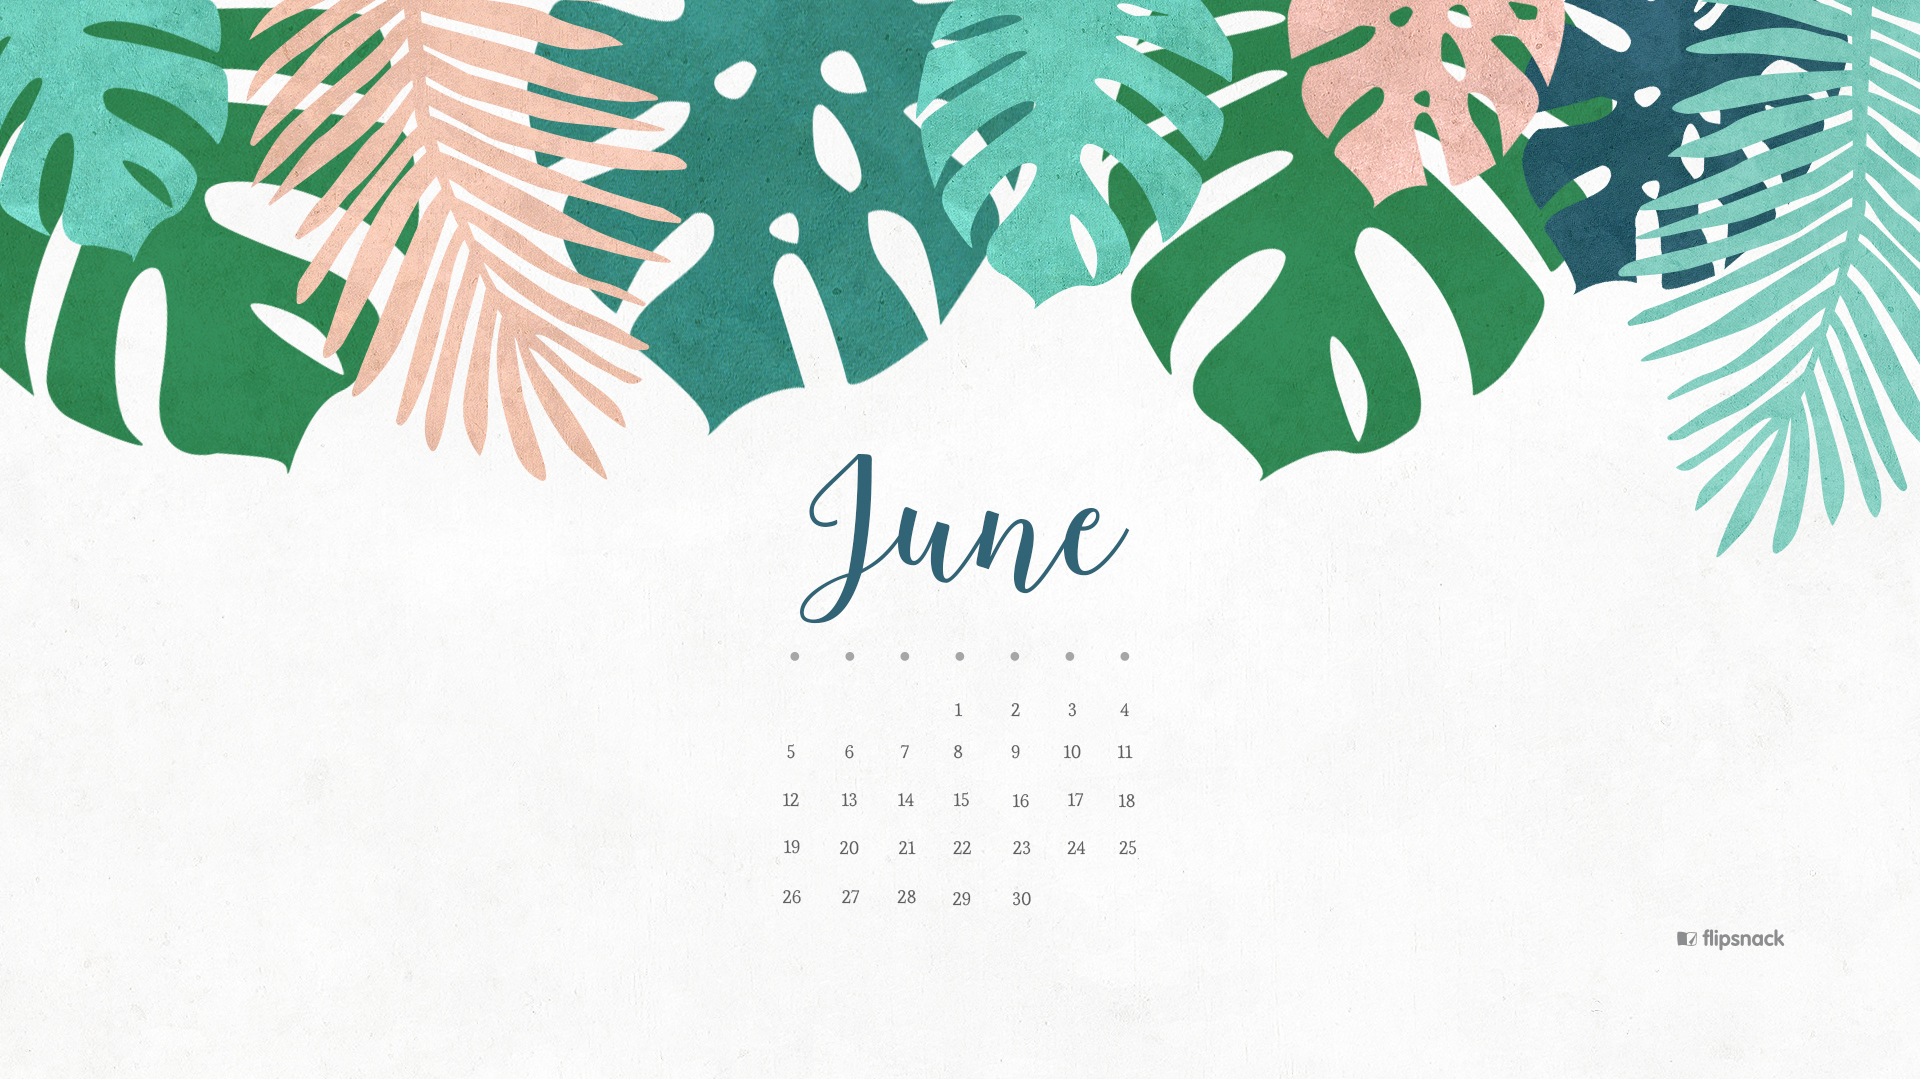 Calendar Design Wallpaper : June free calendar wallpaper desktop background